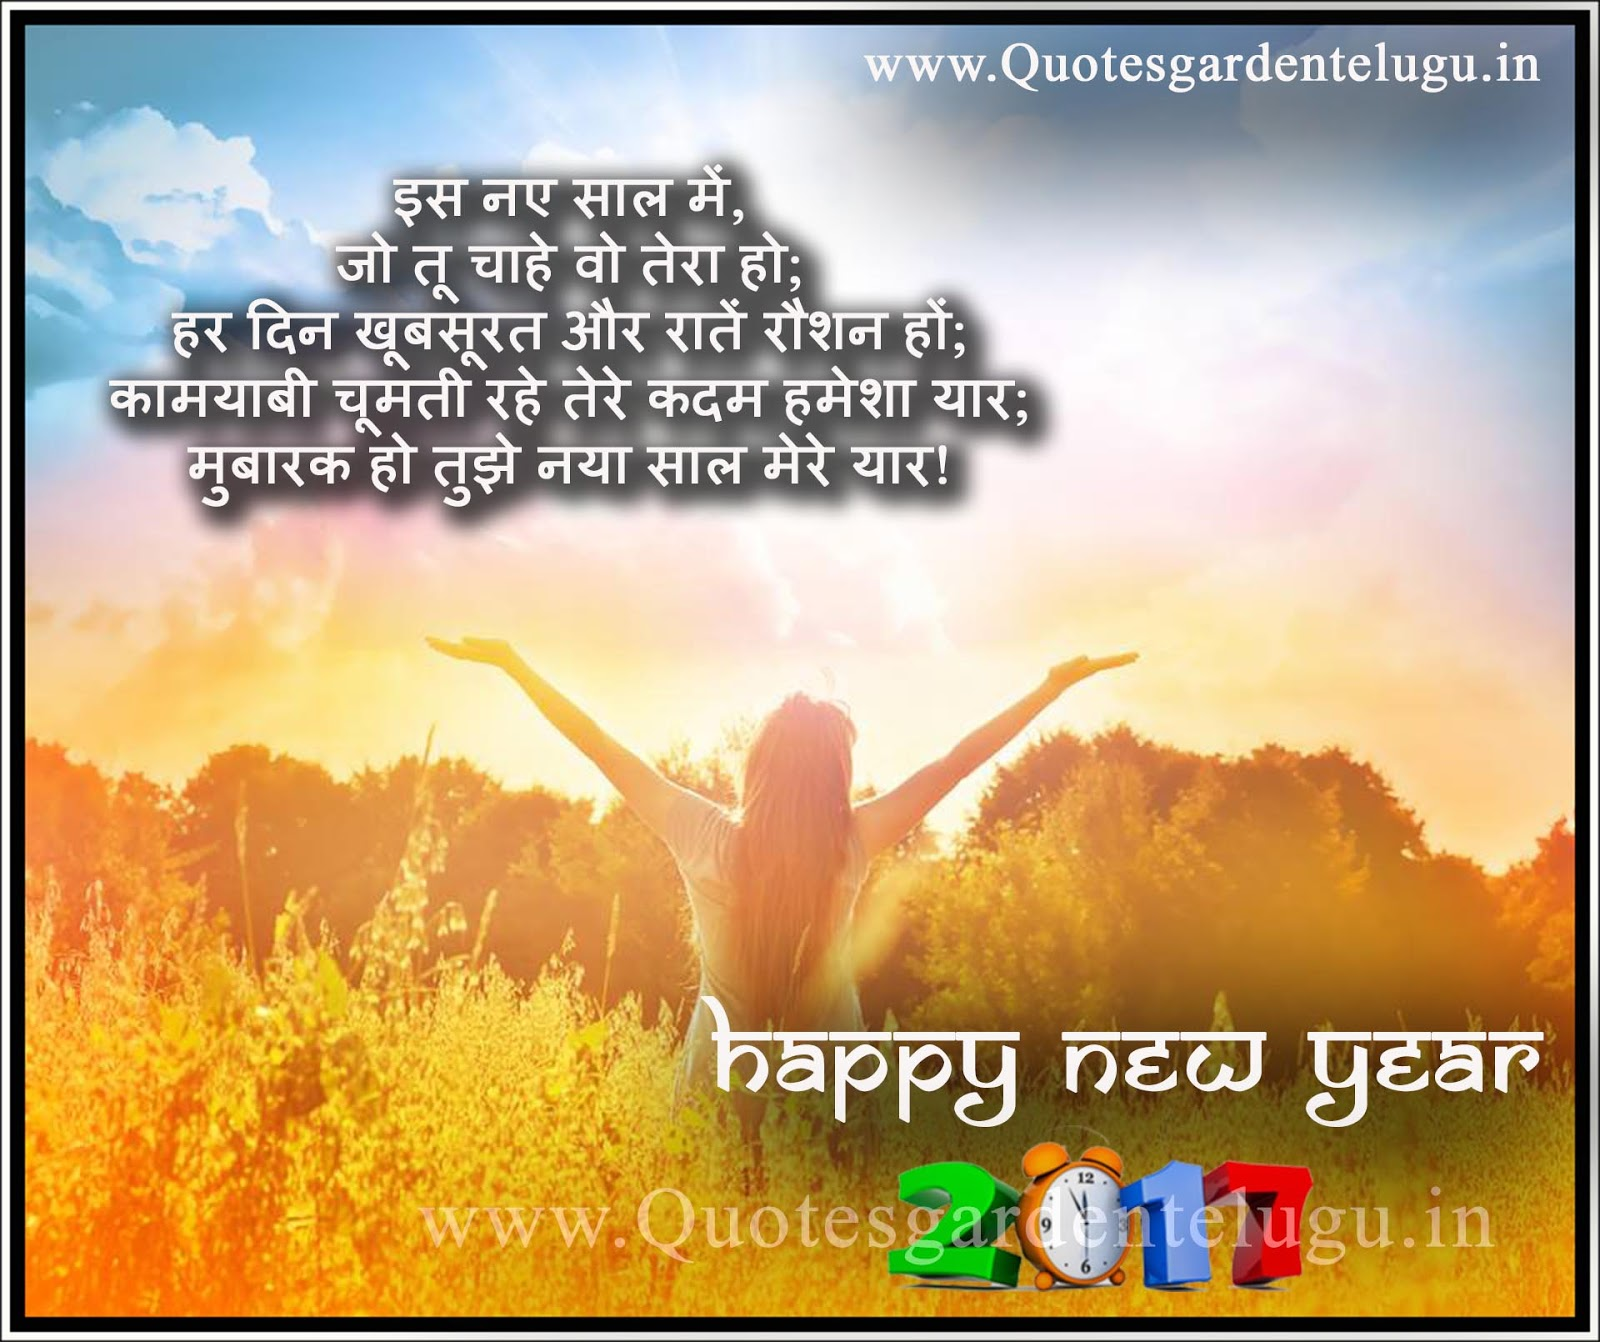 Happy new year messages in hindi 2017 happy new year greetings in happy new year messages in hindi 2017 happy new year greetings in hindi m4hsunfo